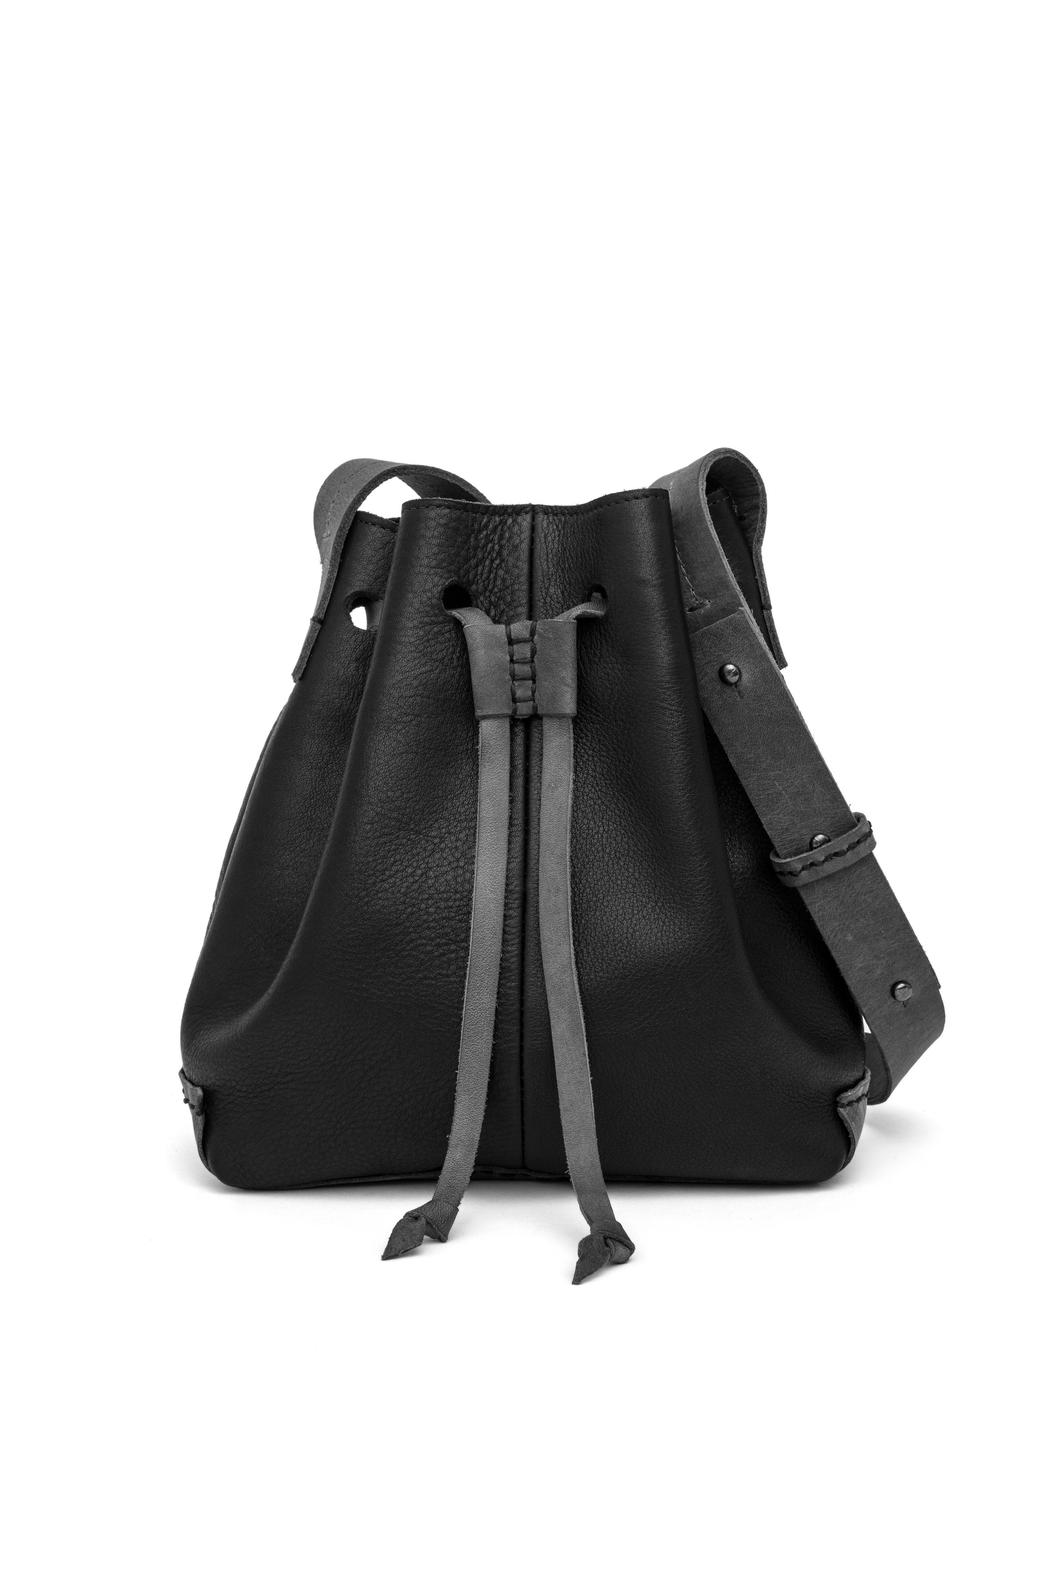 MEIRAV OHAYON Black Grey Bucket Bag - Main Image